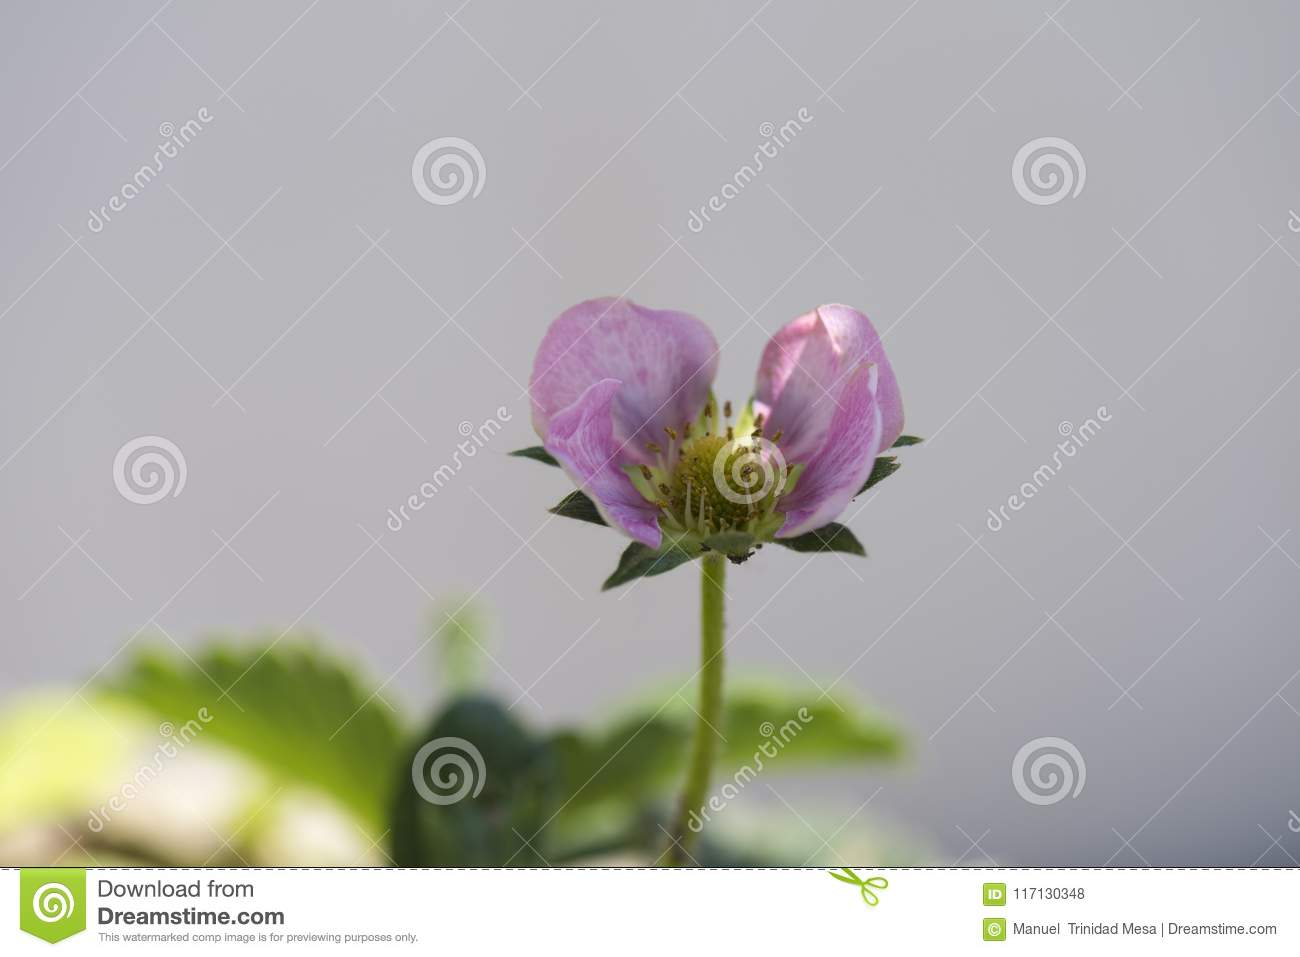 Strawberry Plant With Pink Flower Stock Photo Image Of Petal